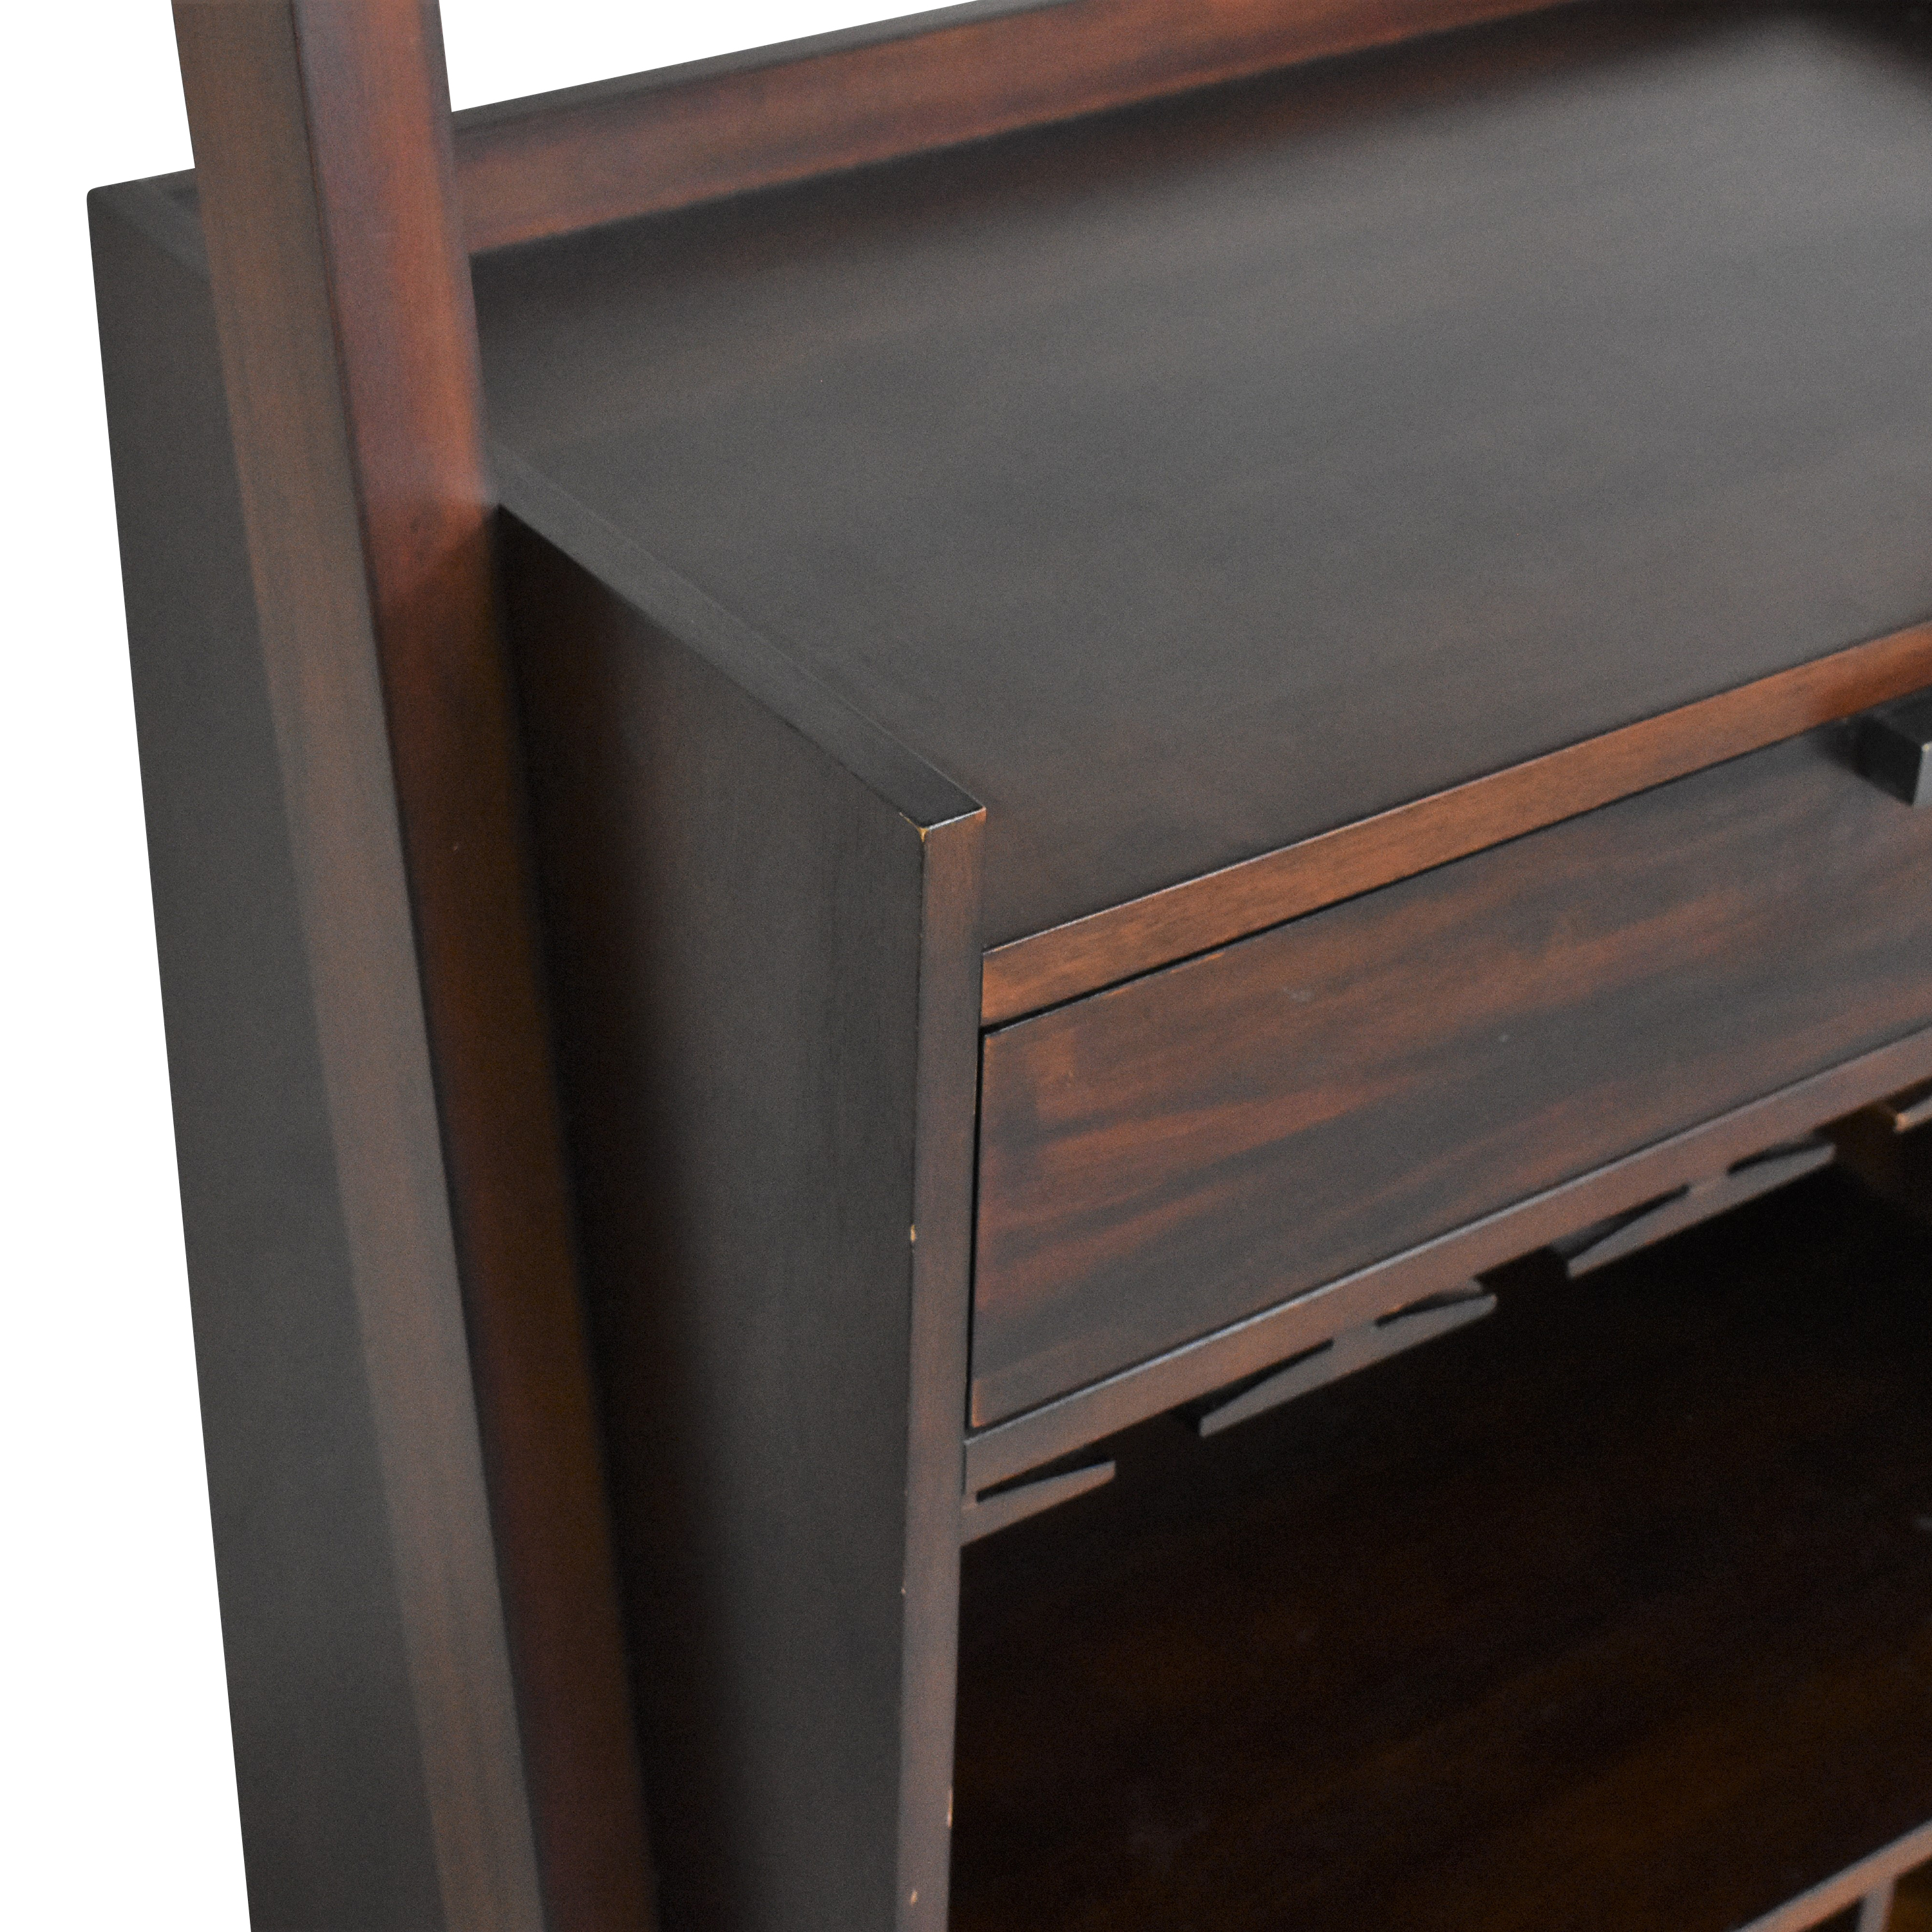 Crate and Barrel Sloane Leaning Wine Bar / Bookcases & Shelving